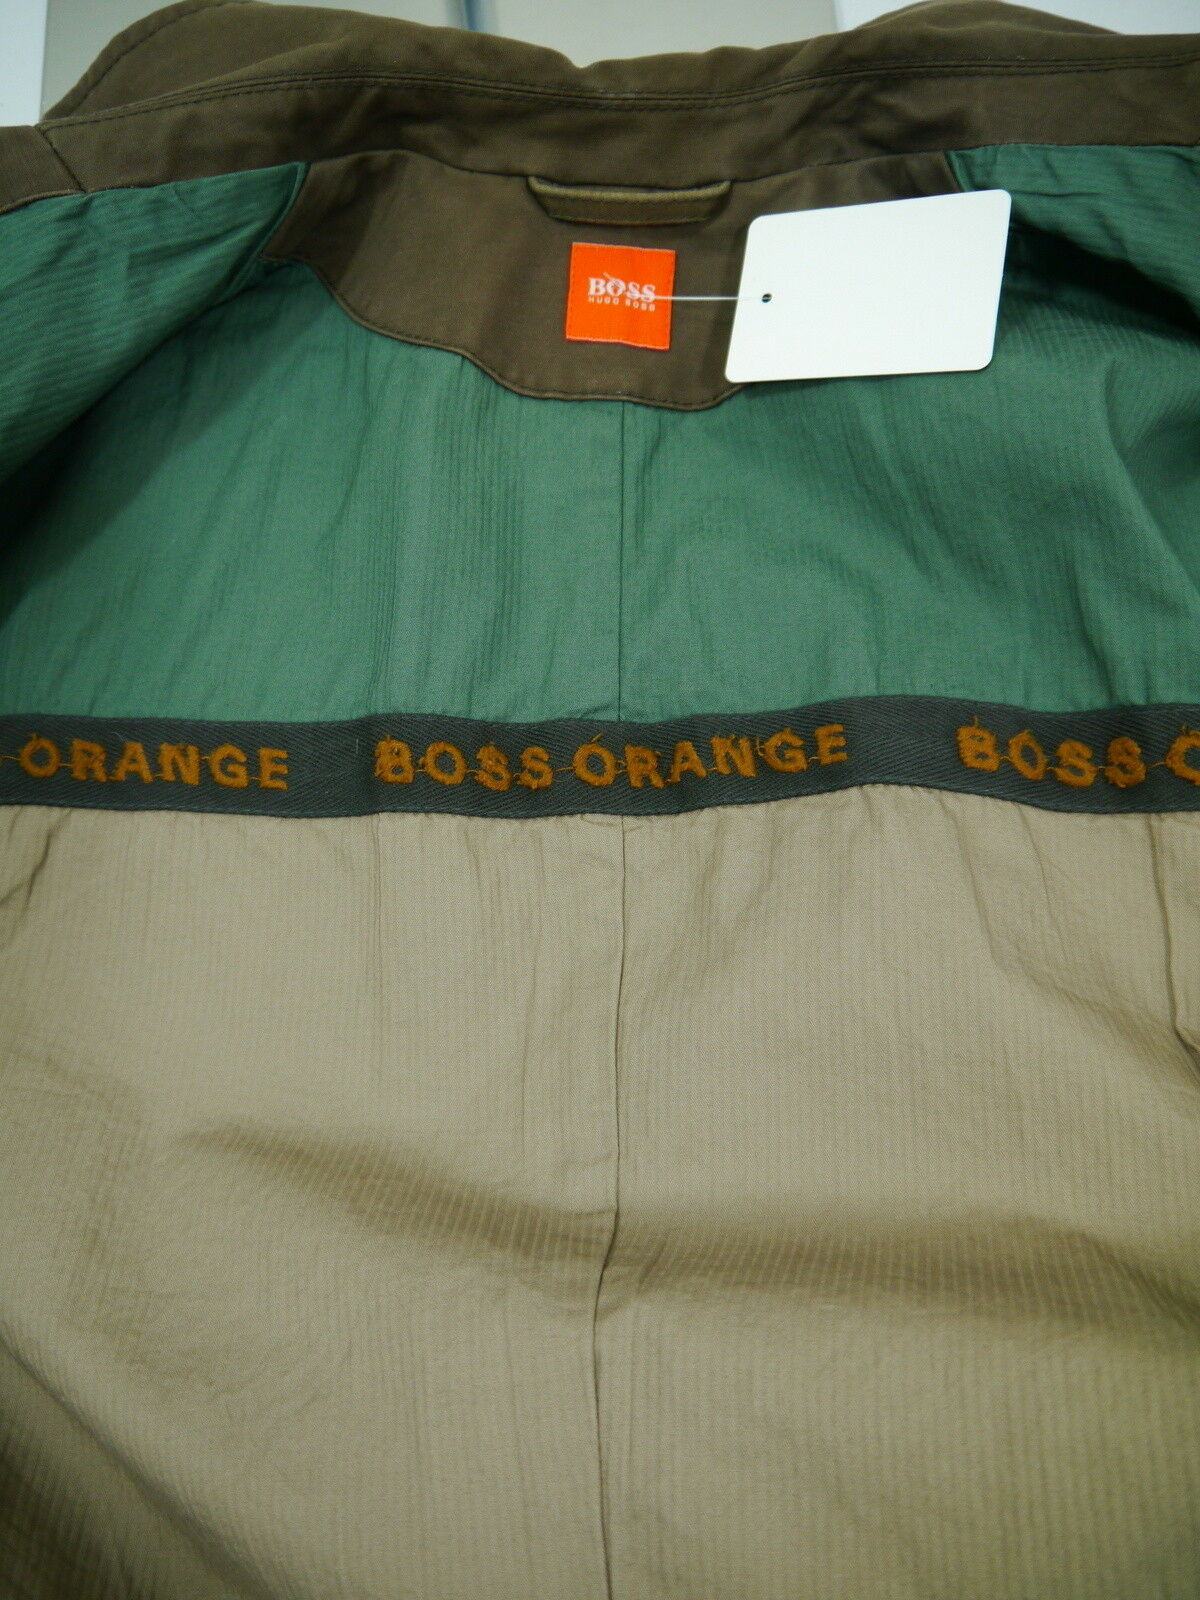 Lässiges HUGO BOSS BOSS BOSS Orange Hr.Sakko BW braun Used Optik Odlon4 Gr.48 NP498,-  | Günstigen Preis